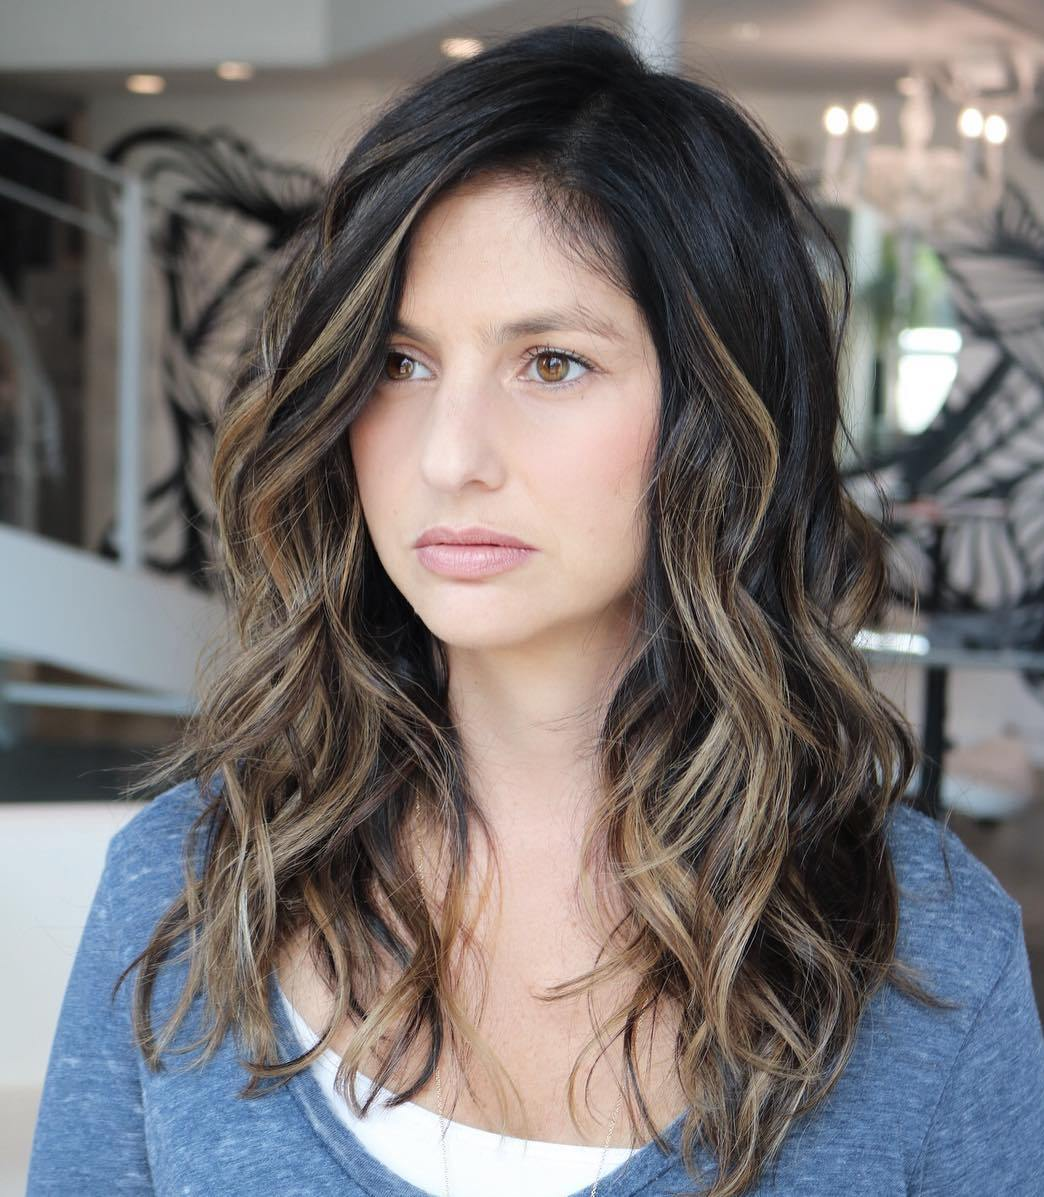 Incredible 60 Most Beneficial Haircuts For Thick Hair Of Any Length Short Hairstyles Gunalazisus